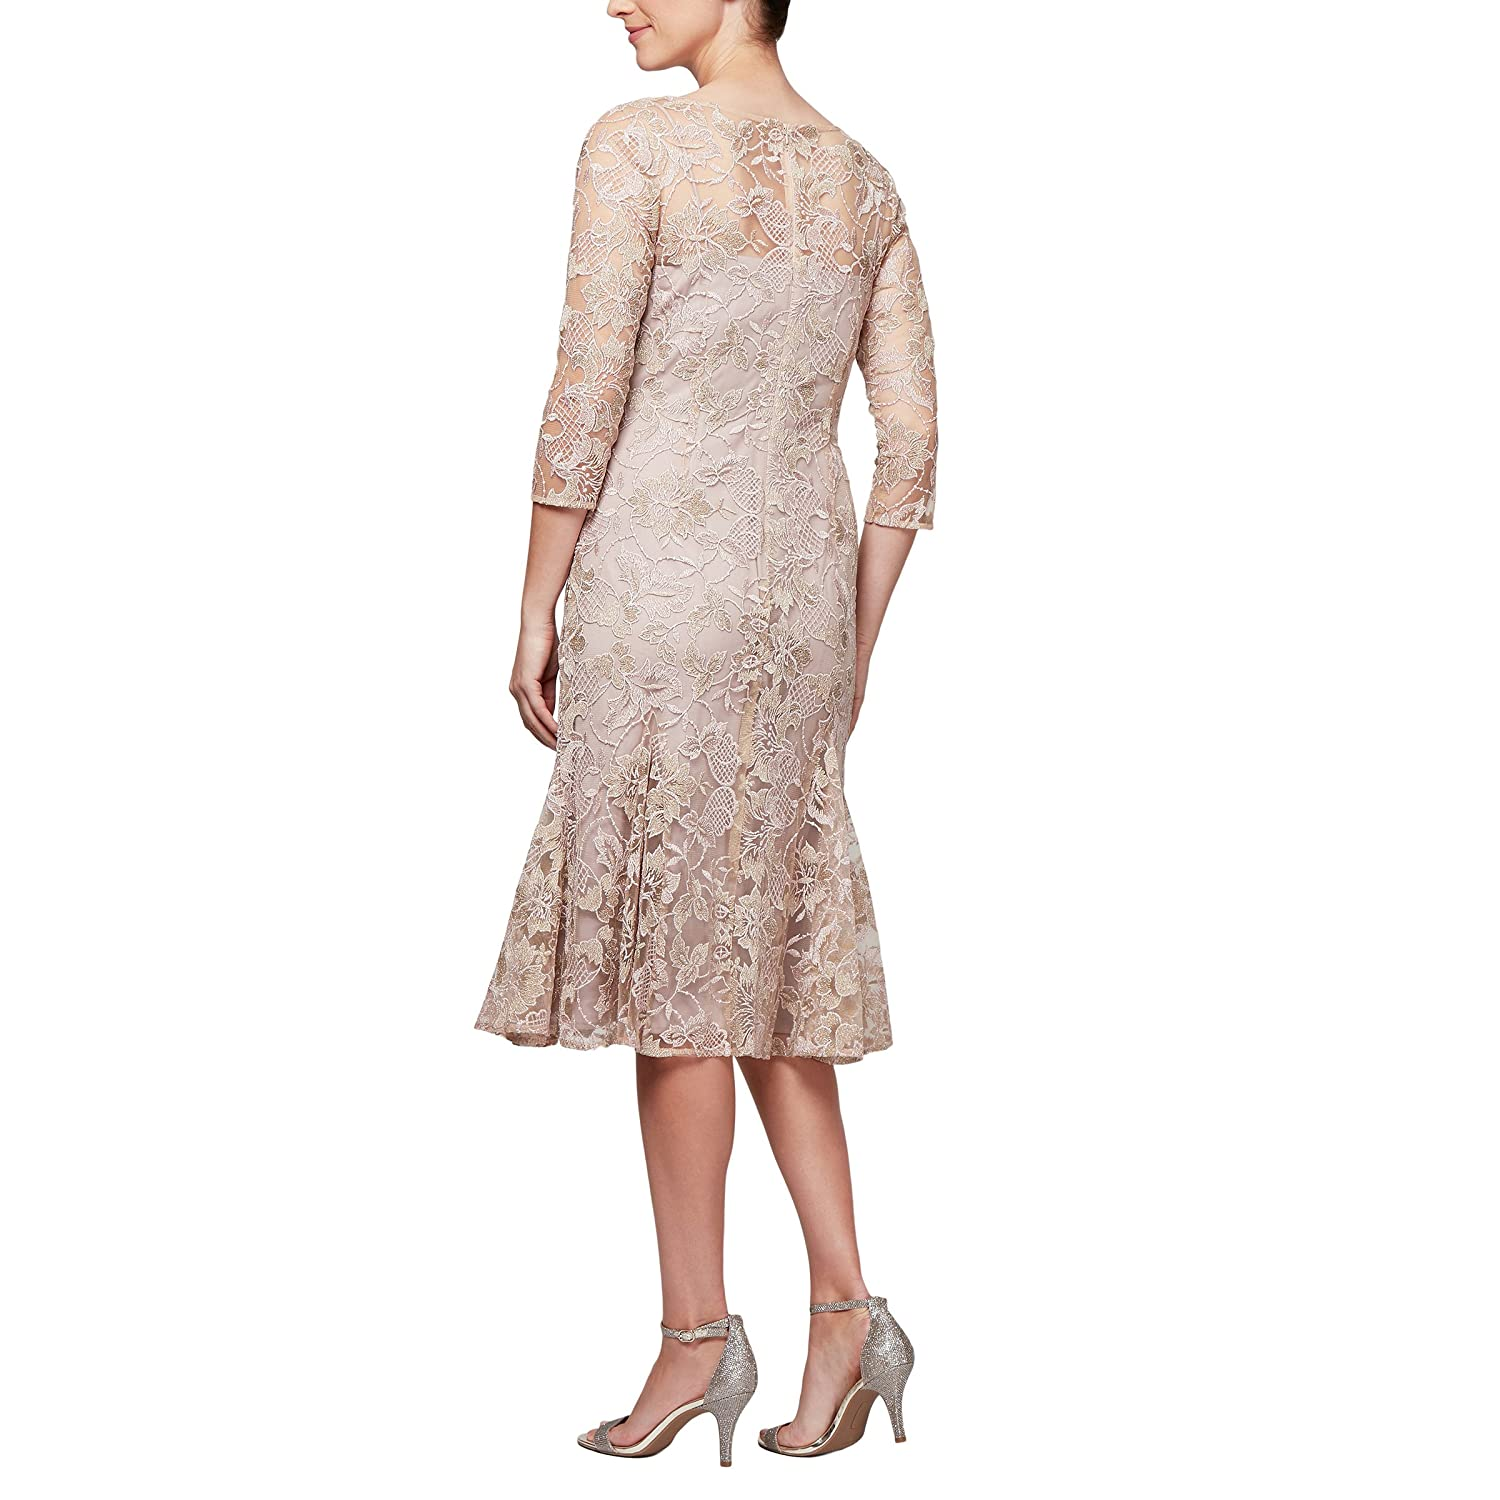 Embroidered Midi Dress At Alex Amazon Evenings Women's Length Party F1TJlKc